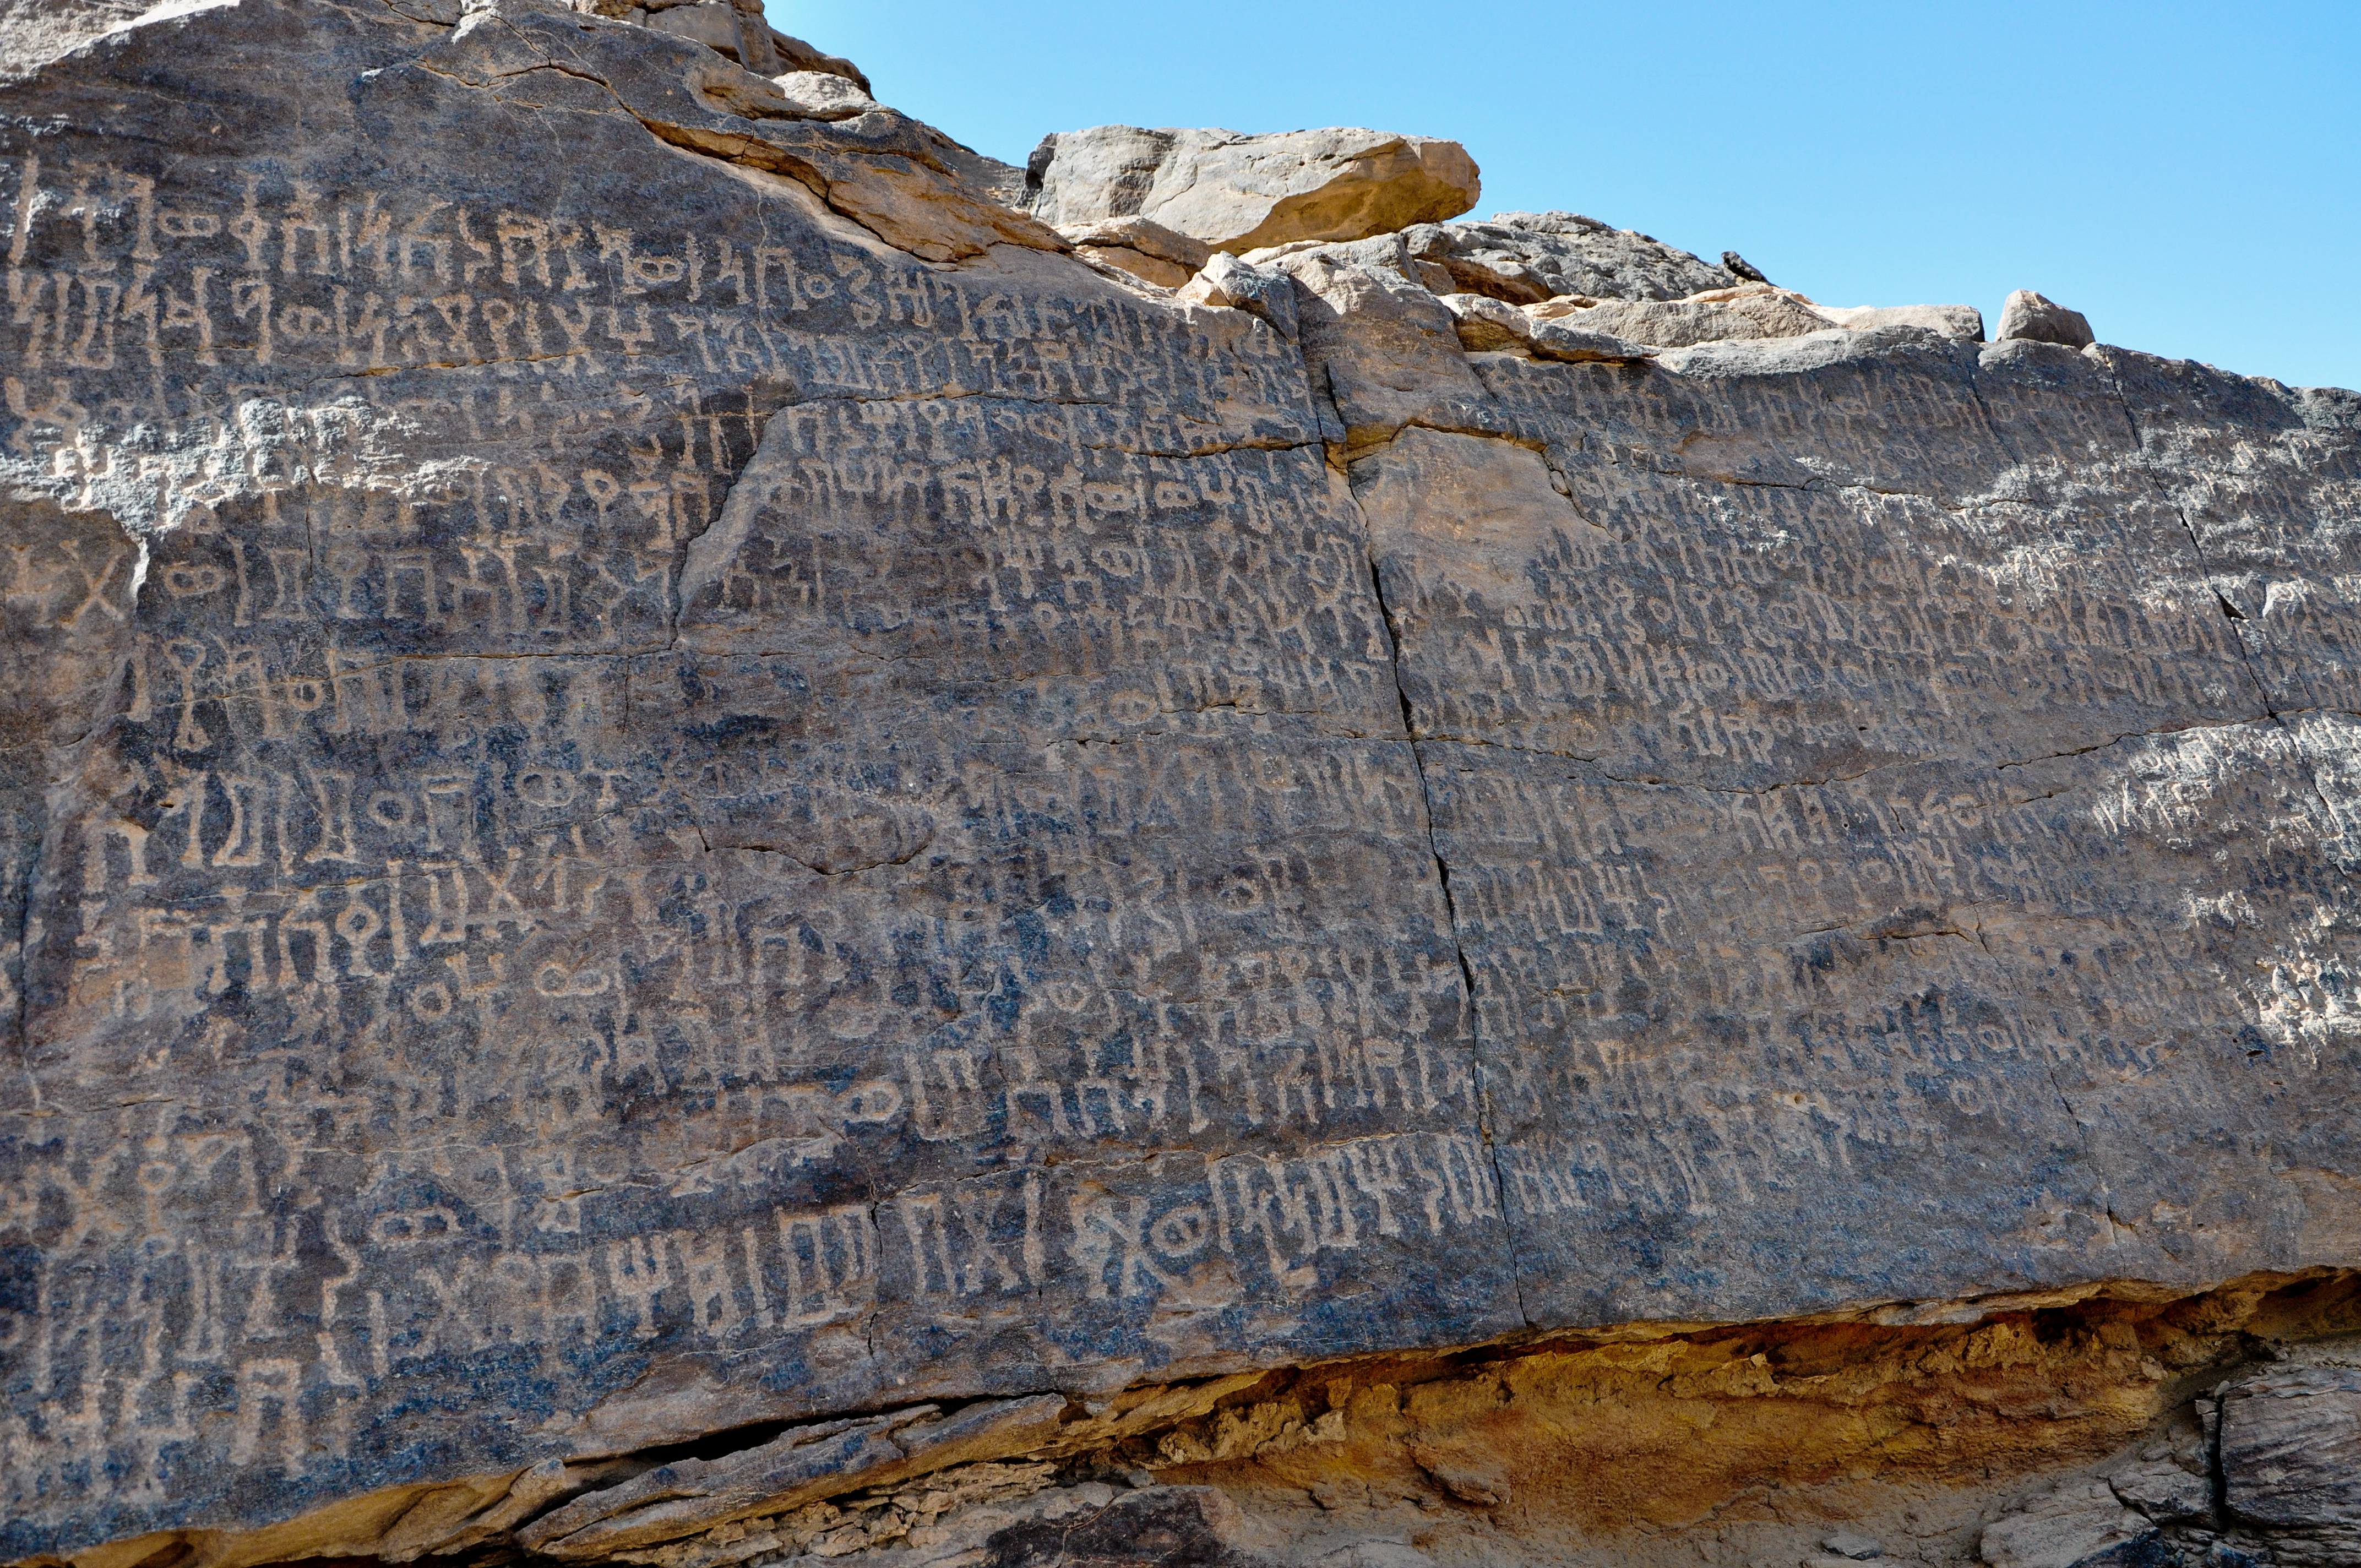 Famous_inscription_in_Bir_Hima,_a_rock_art_site_about_200_kilometers_north_of_Na